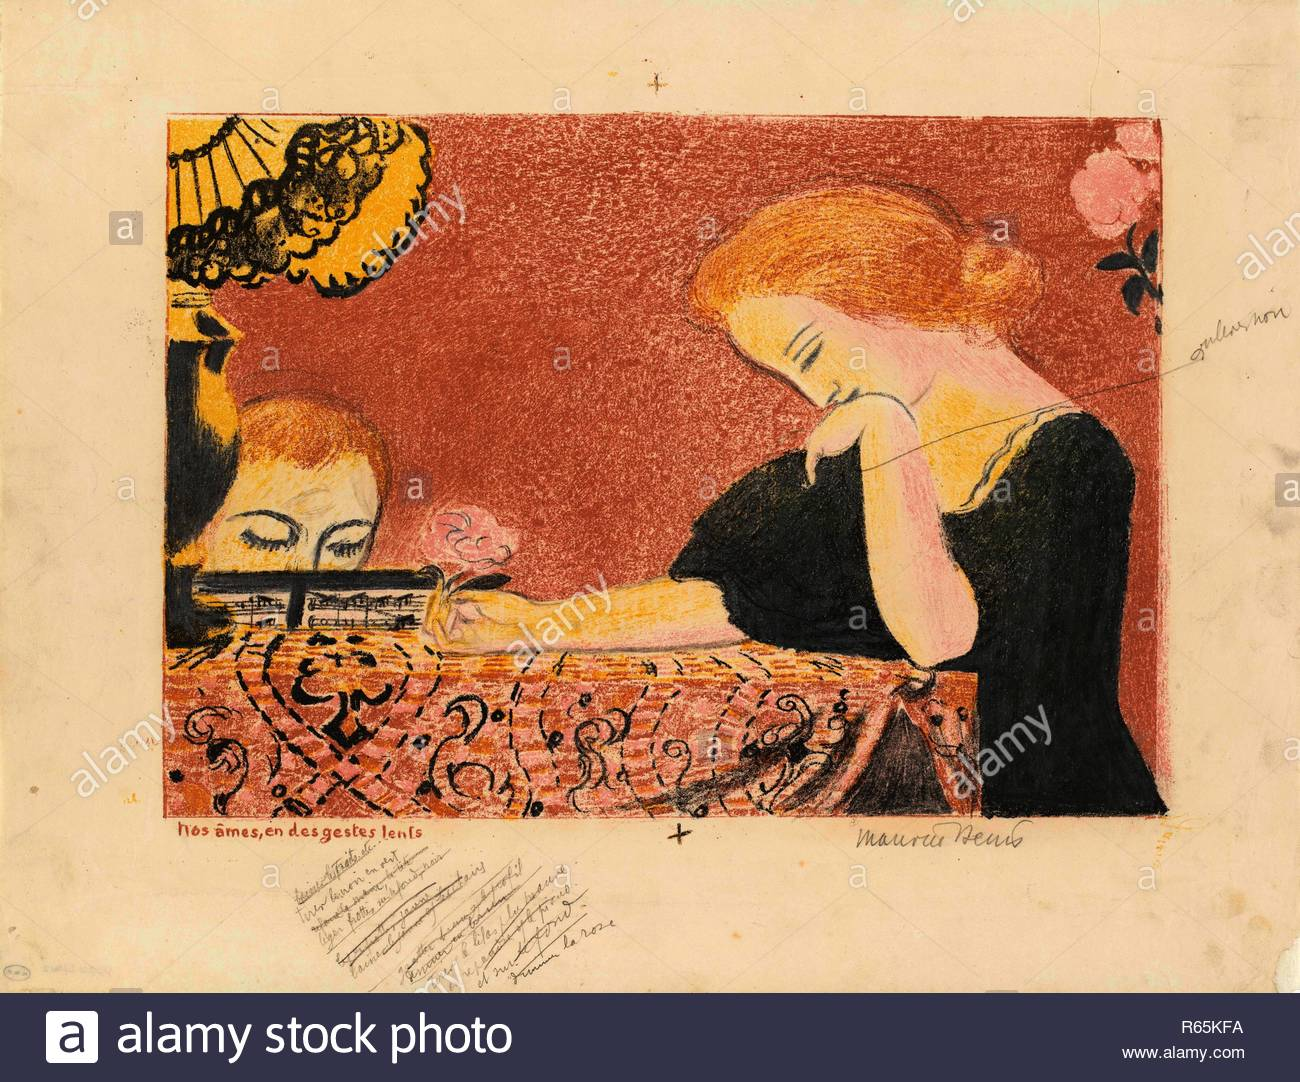 Our Souls, with Languorous Gestures (Nos âmes en des gestes lents) from the series Amour. Dimensions: 40.5 cm x 52.5 cm, 29 cm x 40.4 cm. Museum: Van Gogh Museum, Amsterdam. Author: DENIS, MAURICE. Maurice Denis. - Stock Image